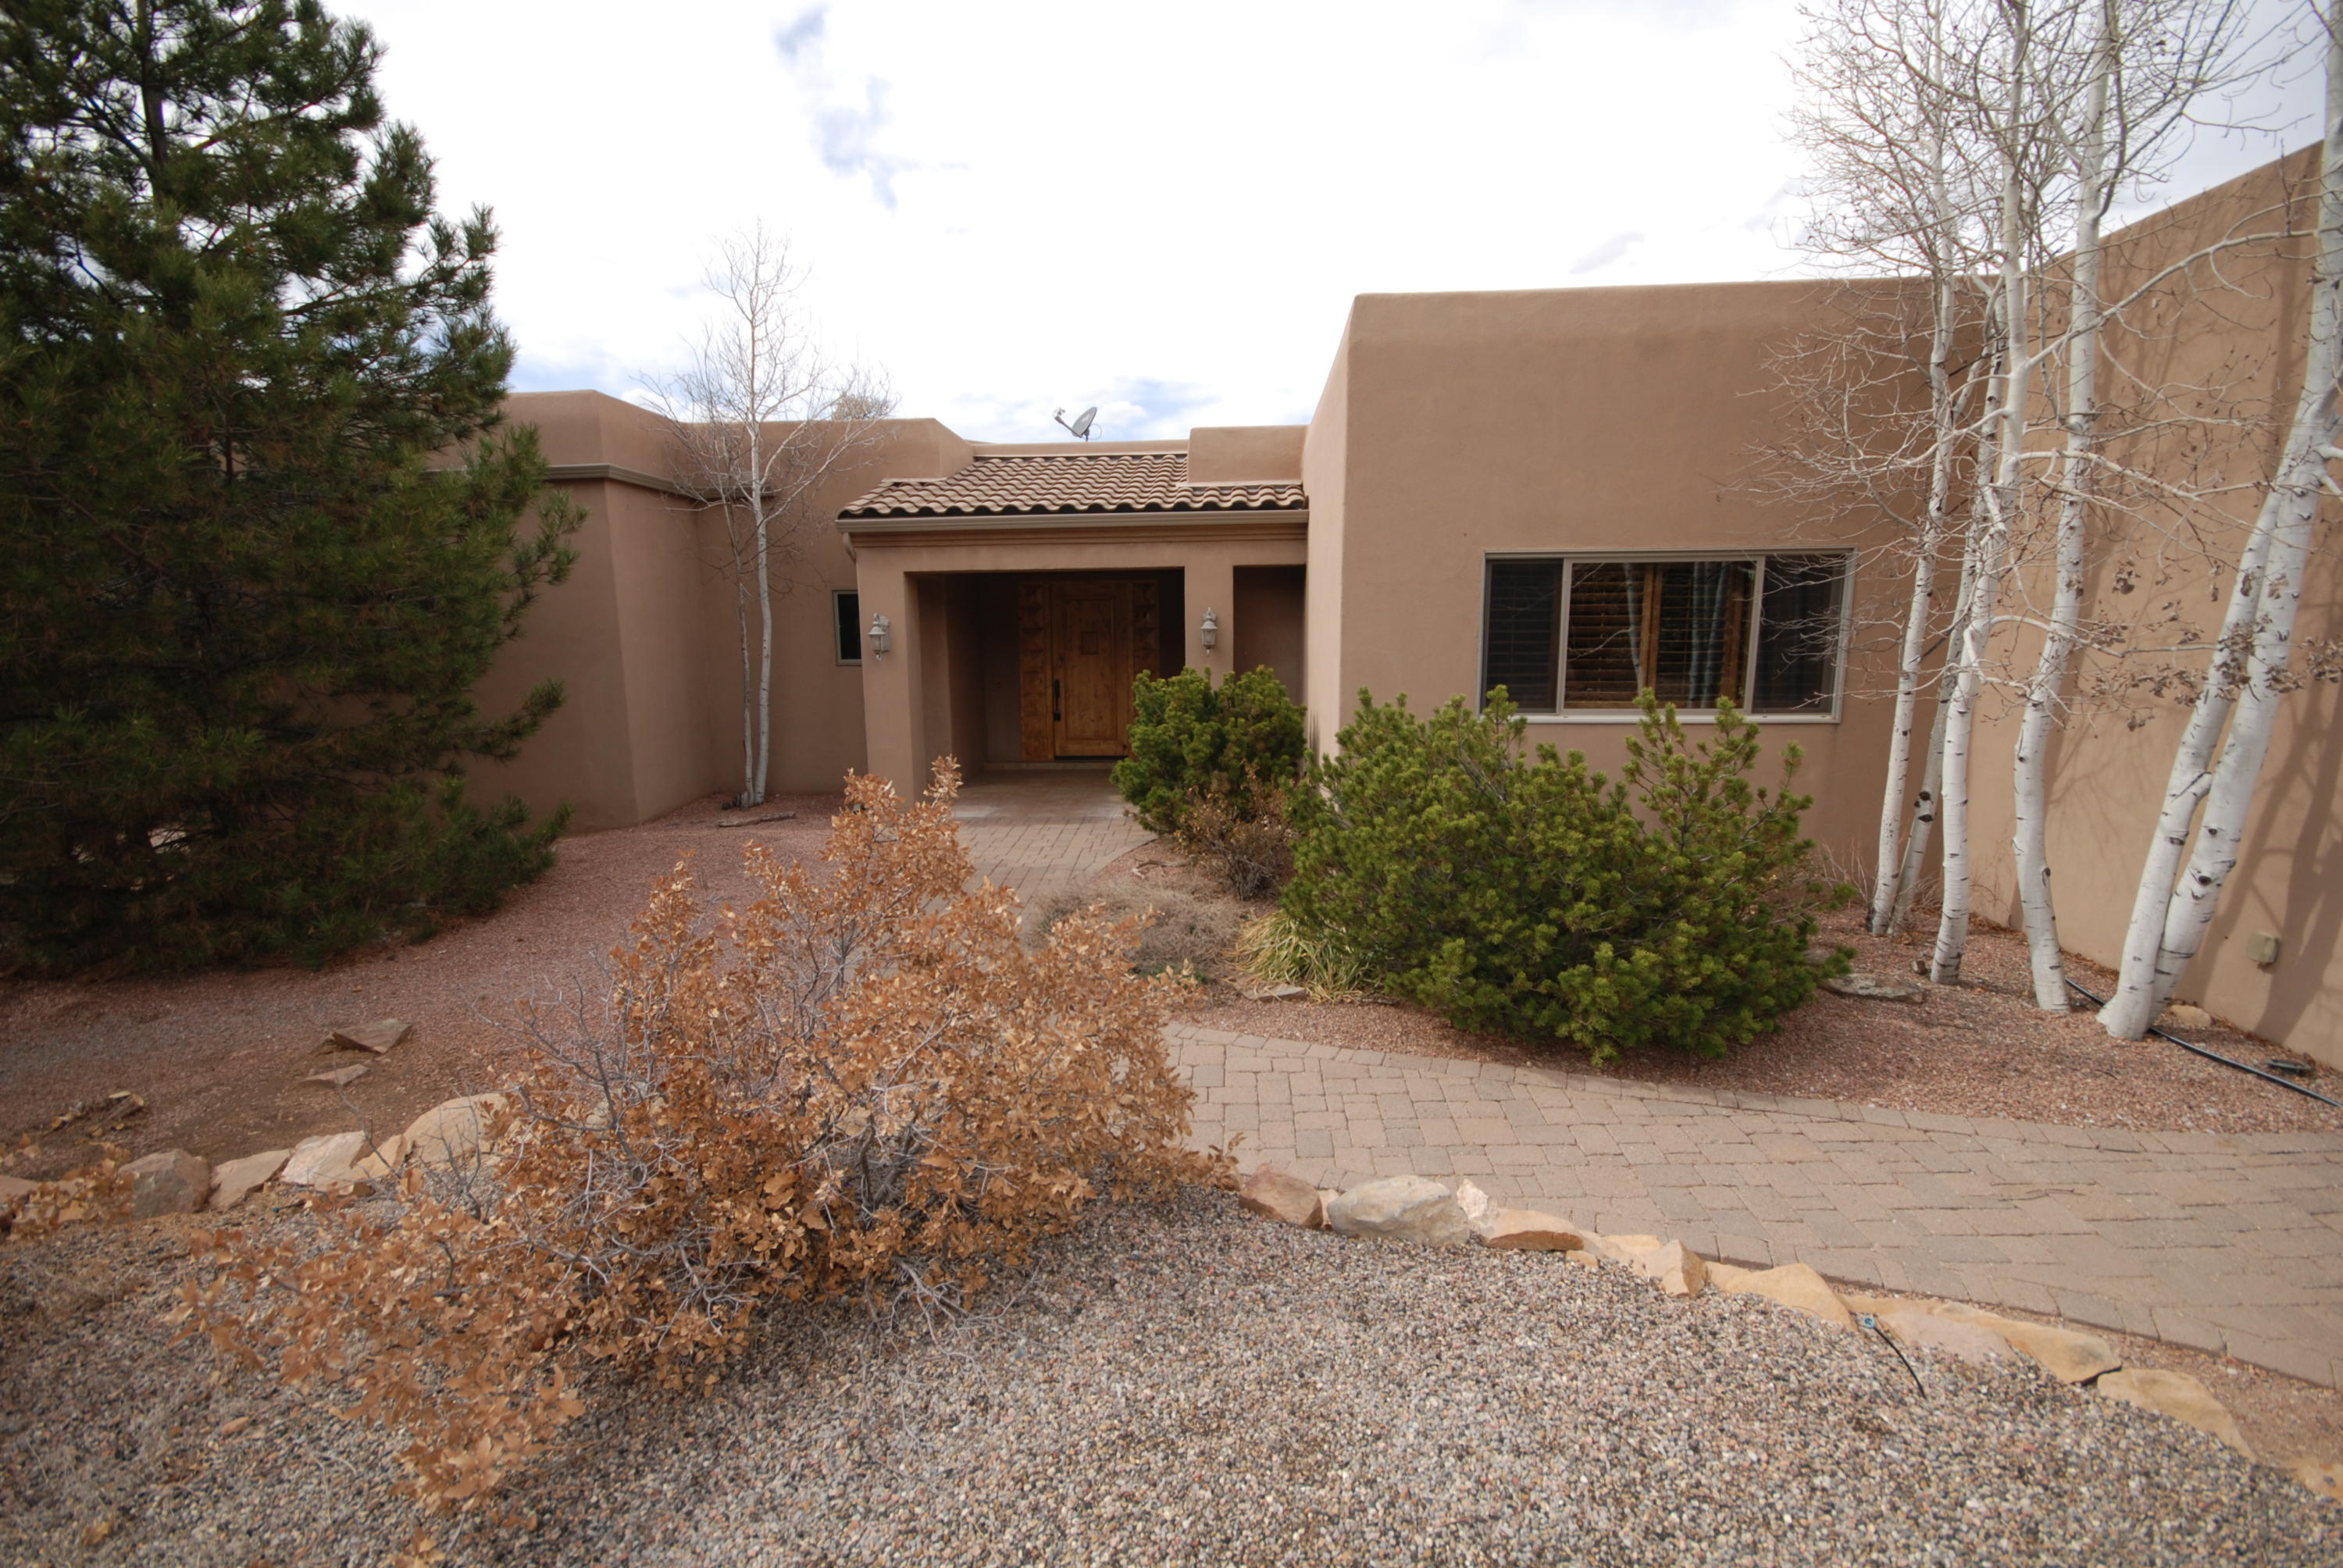 3 TEYPANA Drive Property Photo - Tijeras, NM real estate listing